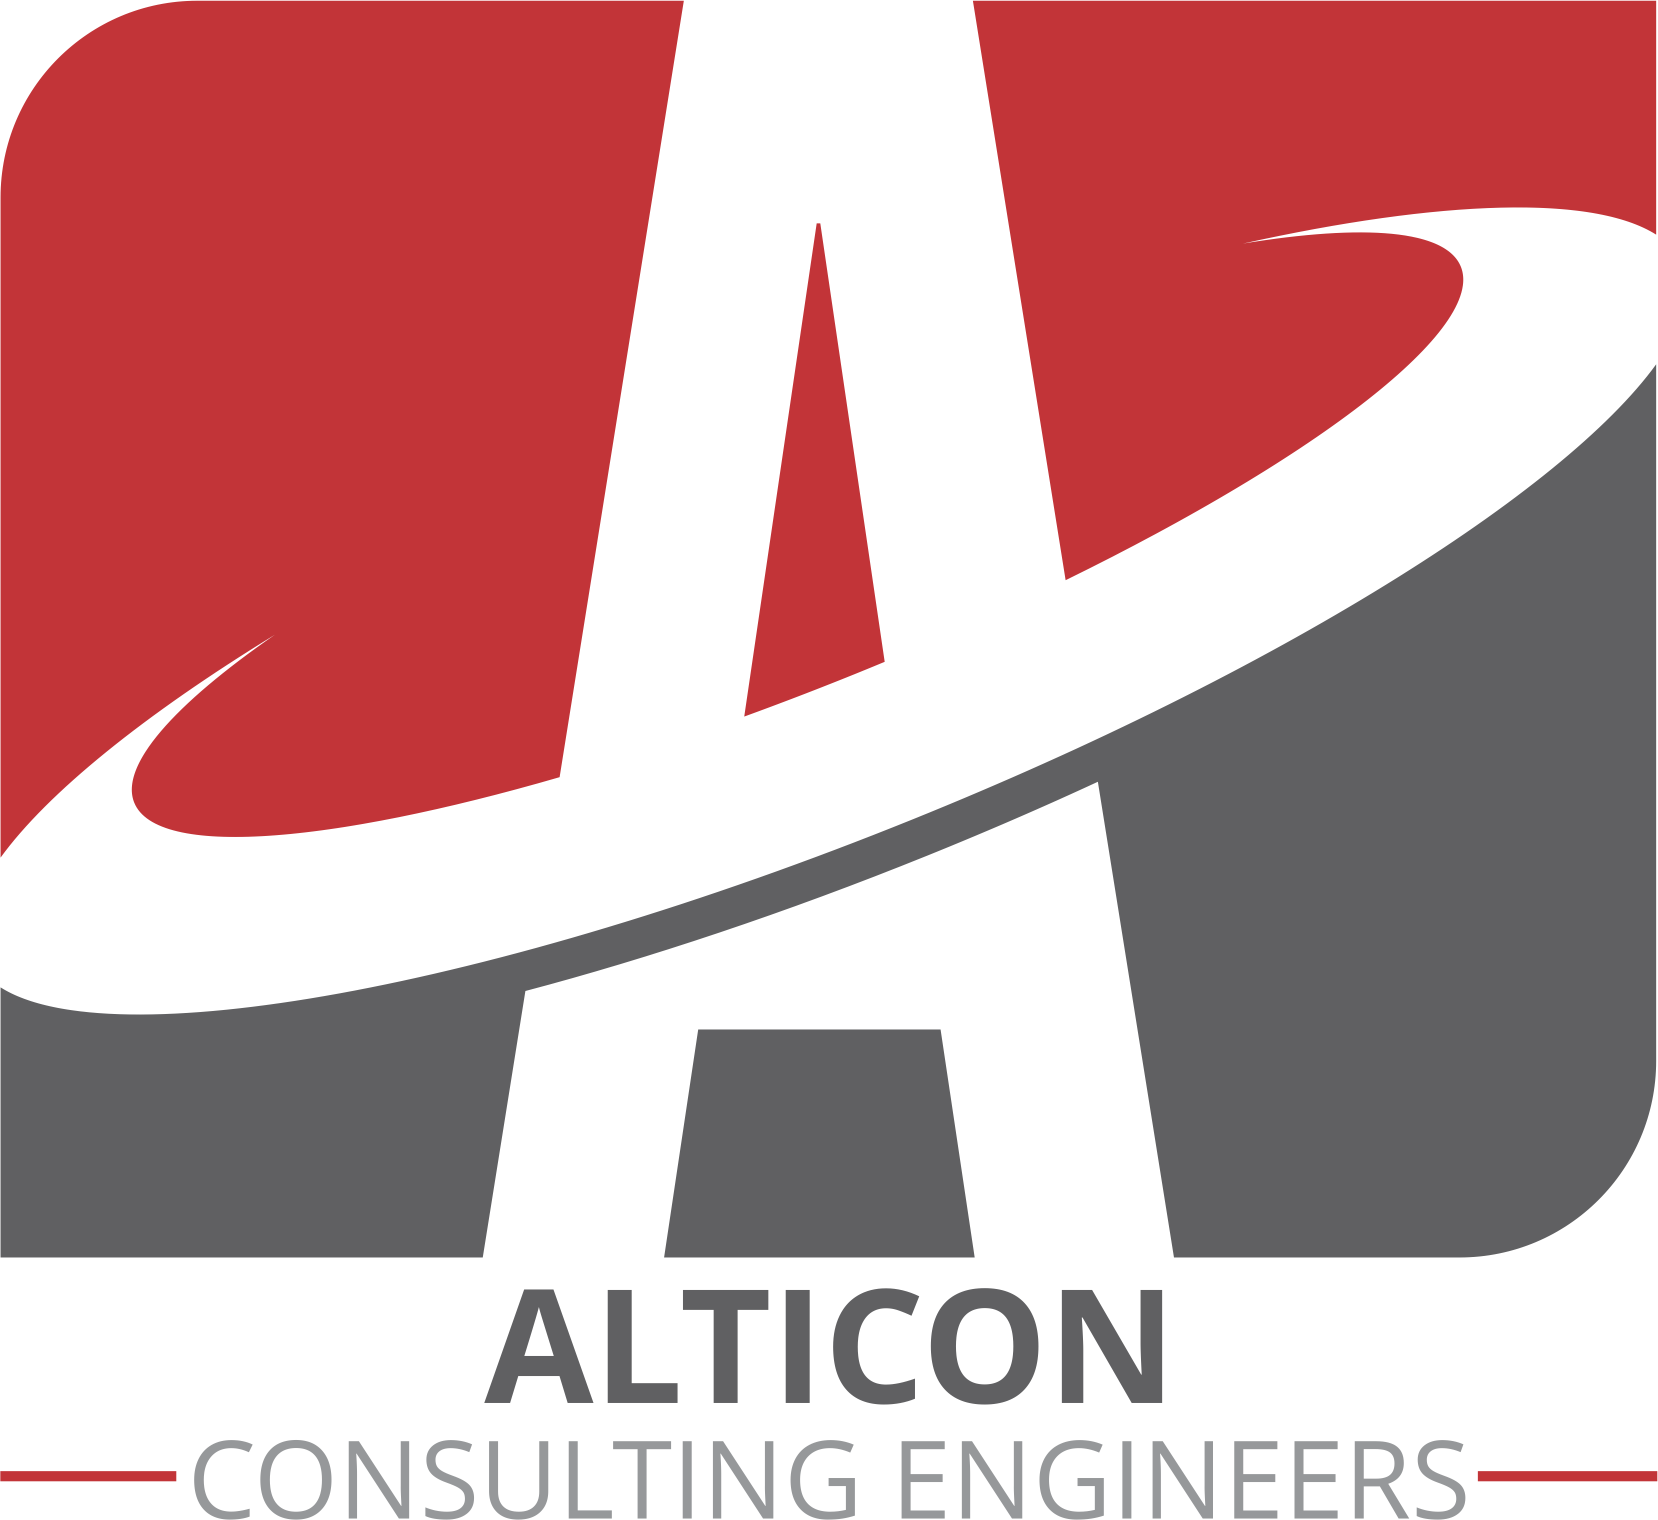 Alticon's Consulting Engineers is a well-established Engineering Consultancy division providing services for both public and private sector organizations.